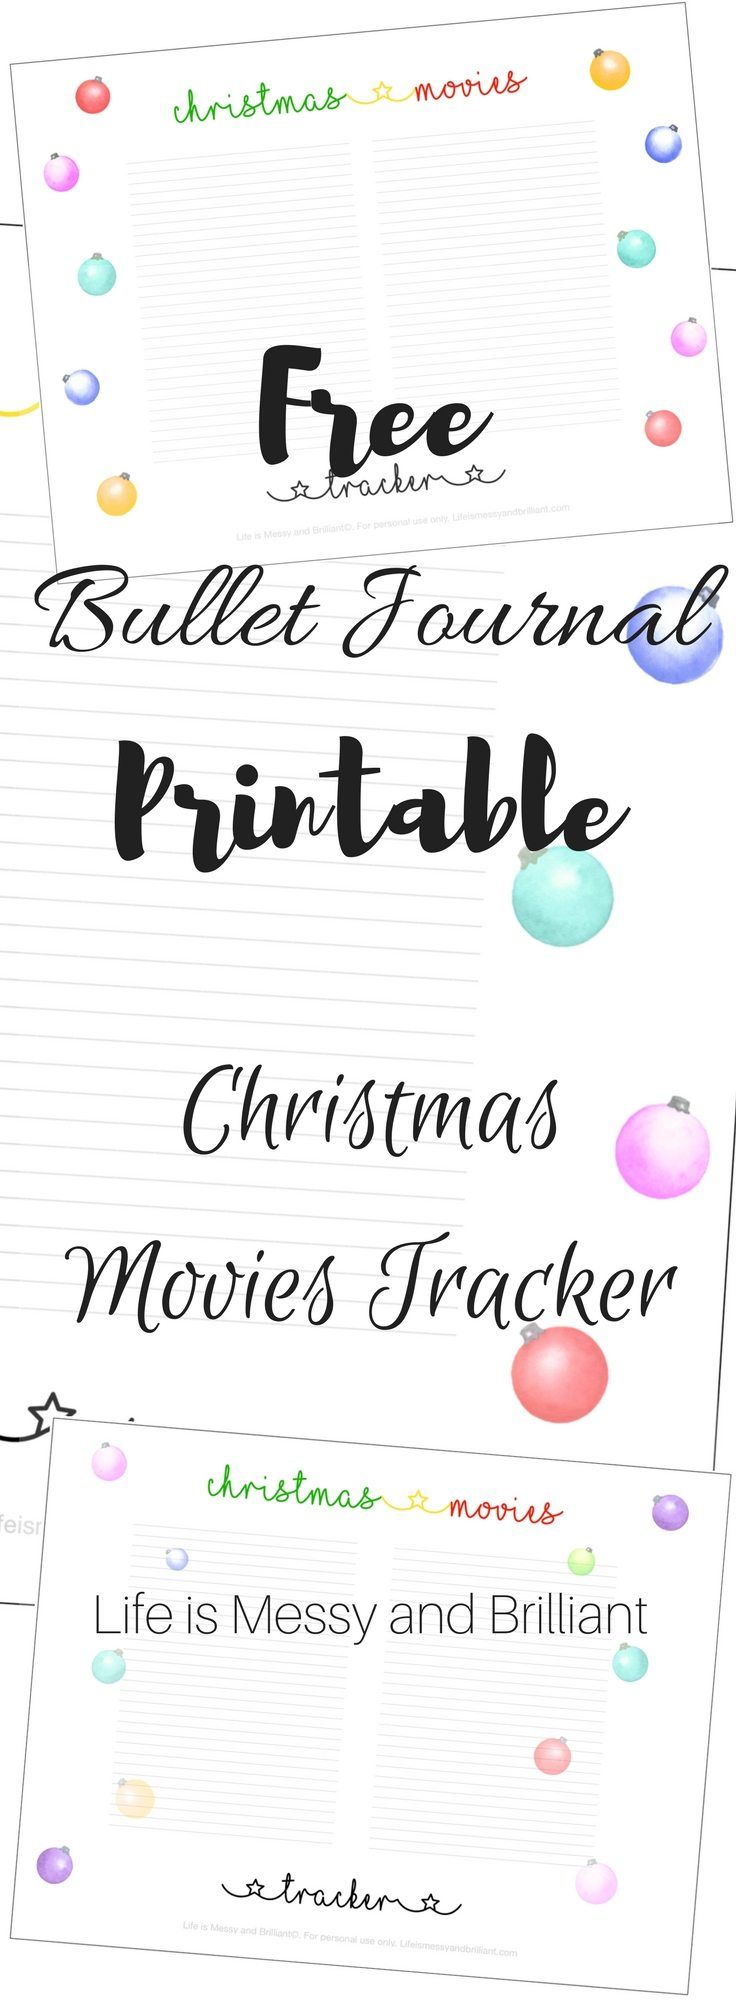 Free bullet journal printables, free printable, bullet journal, free lettering printable, bullet journal mood tracker, bullet journal layout, bullet journal setup, bullet journal weekly, bullet journal inspiration, bullet journal ideas, bullet journal printables, bullet journal monthly, how to create bullet journal, how to bullet journal, digital bullet journal, iPad bullet journal, bullet journal tutorial, art journaling, ipad lettering, Christmas printable, December Printable